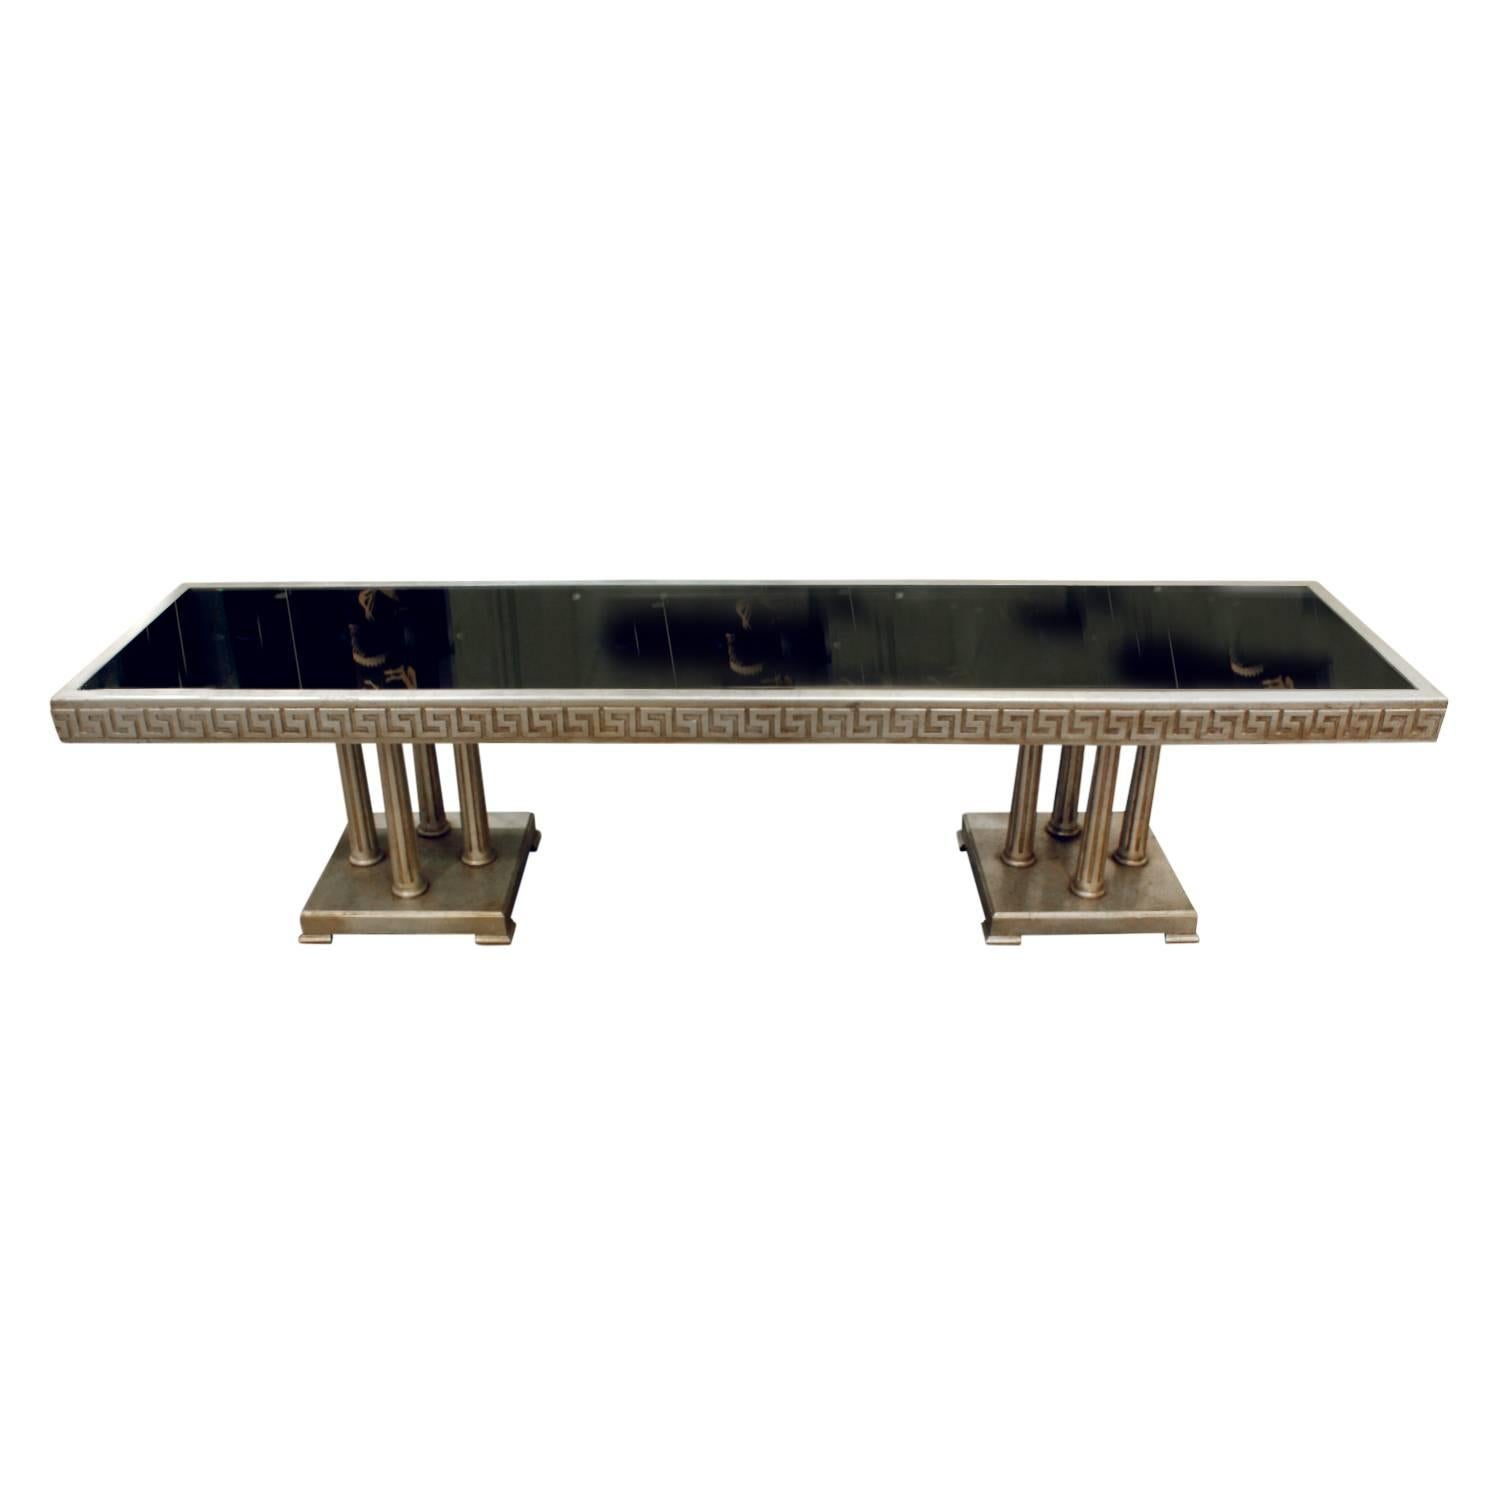 James Mont Large Coffee Table in White Gold Leaf, 1950s